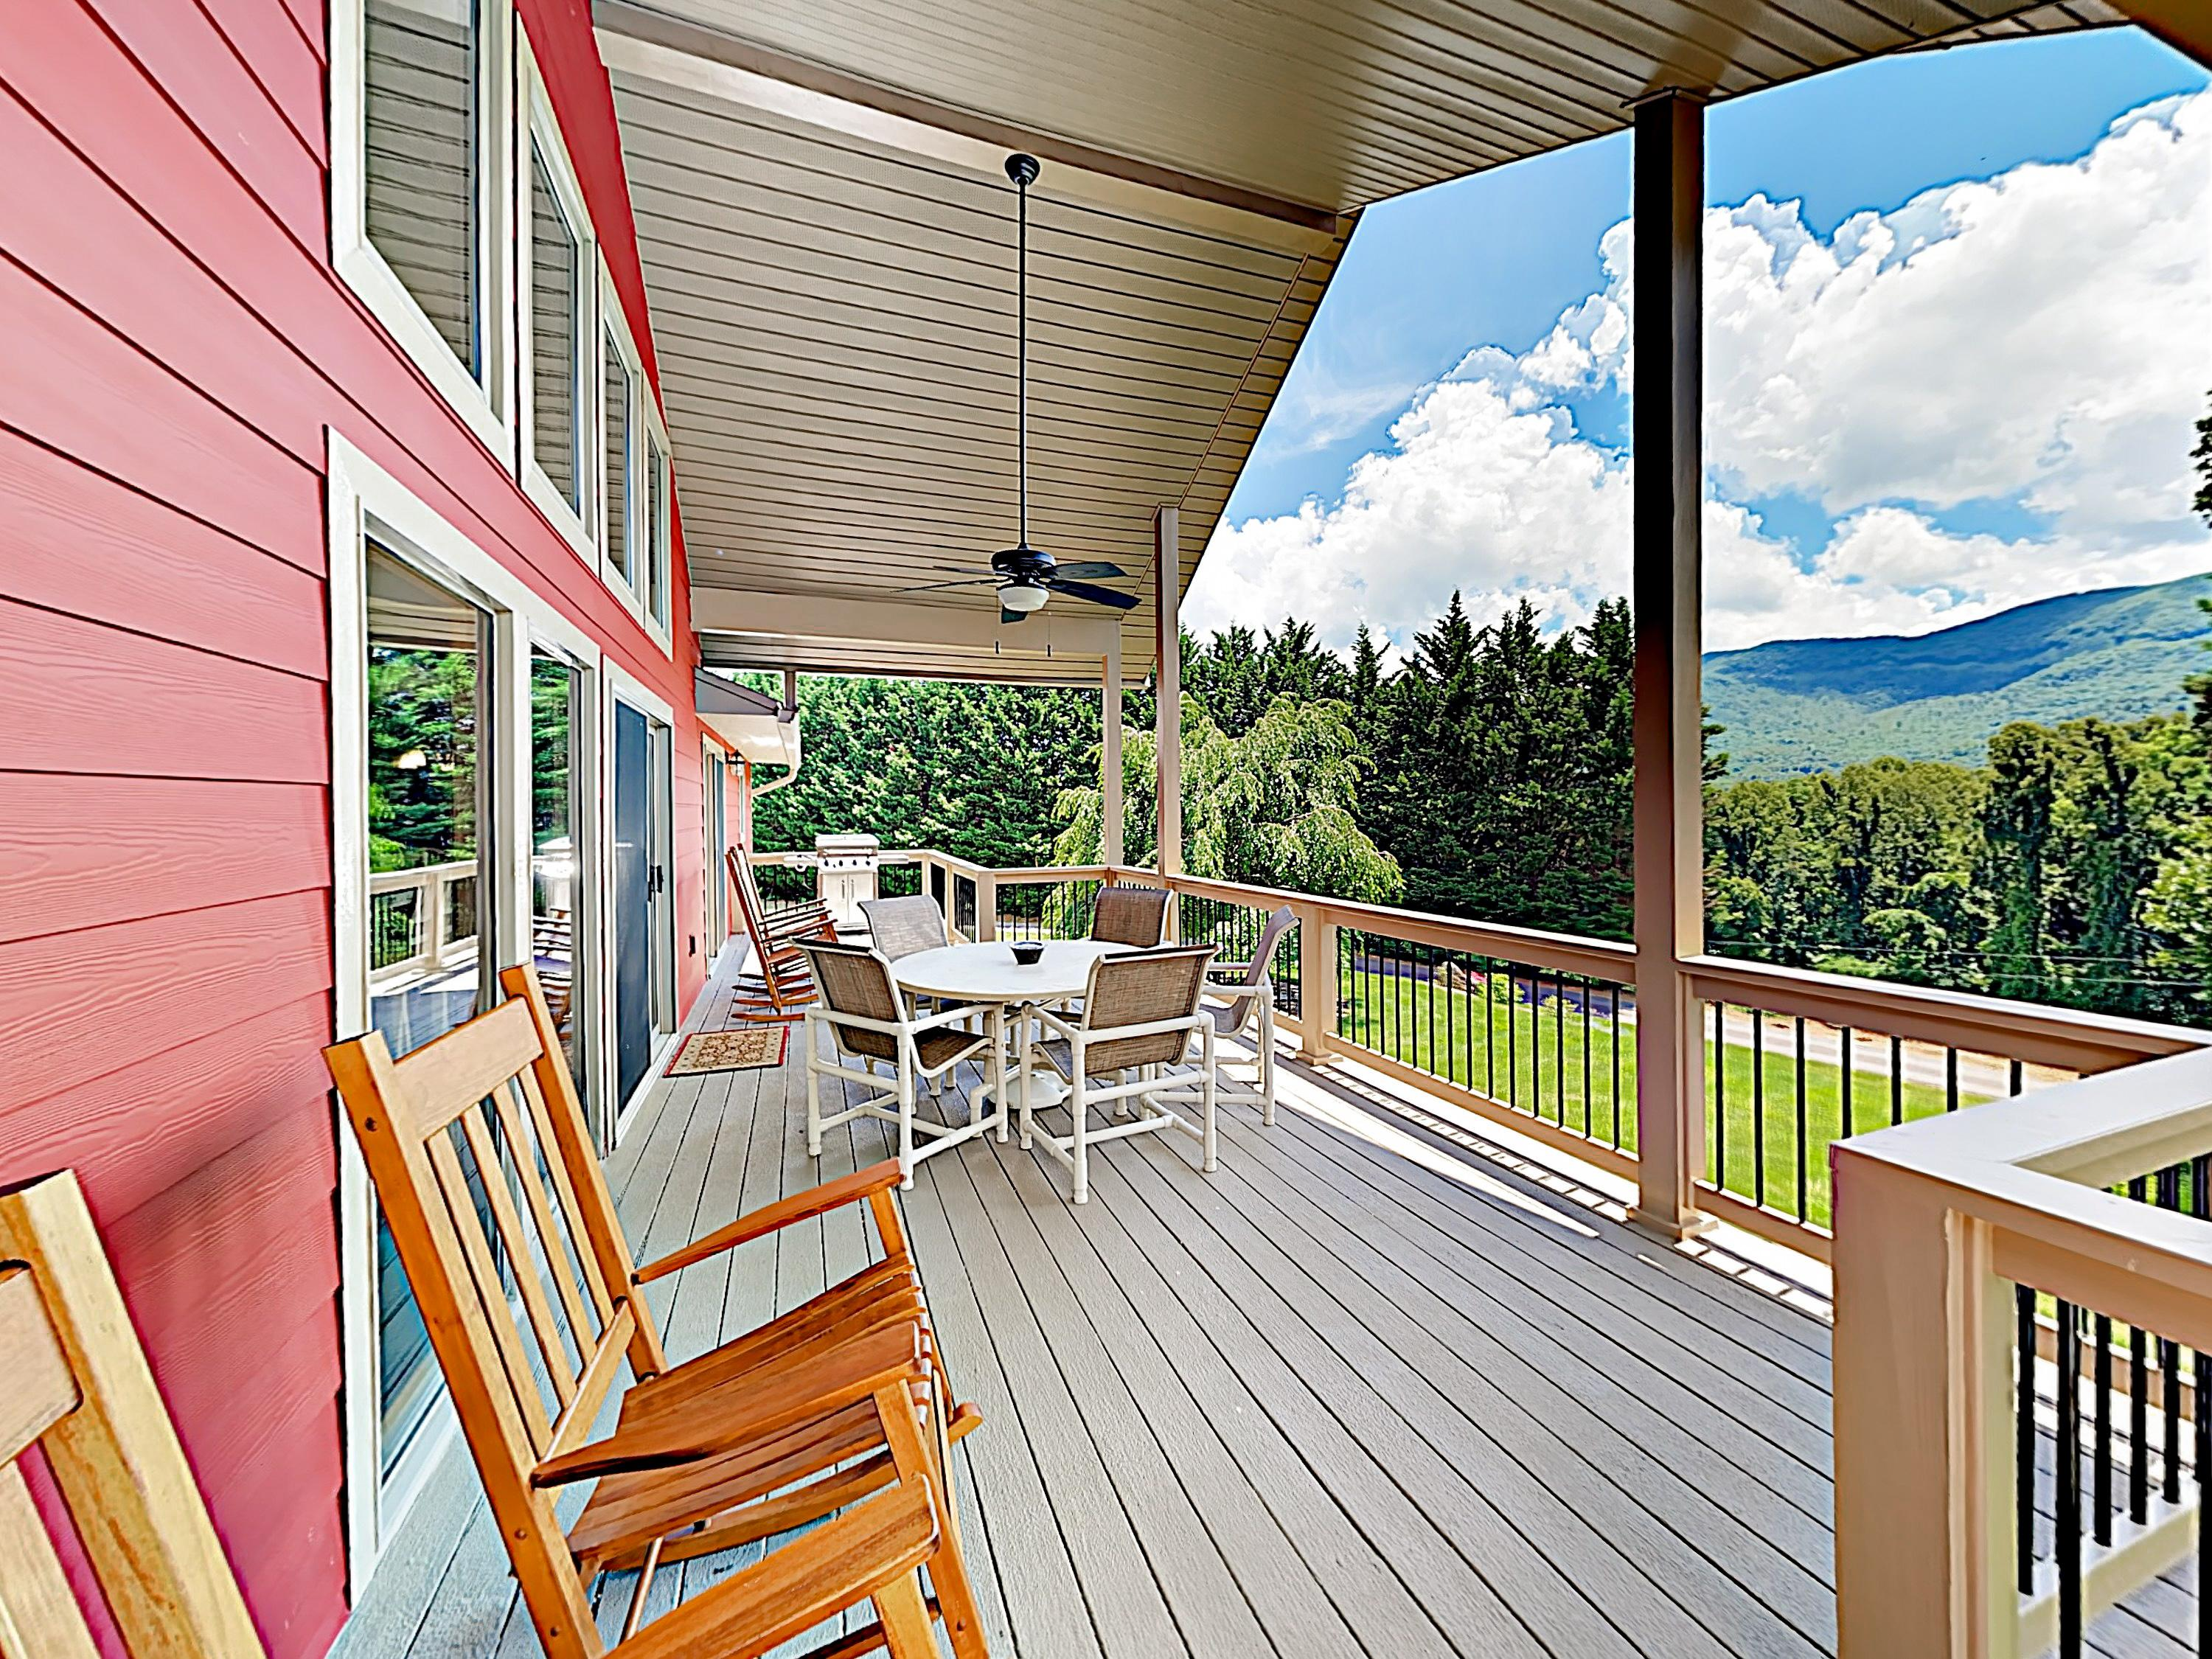 Take in views of the Blue Ridge Mountains from your expansive covered deck.